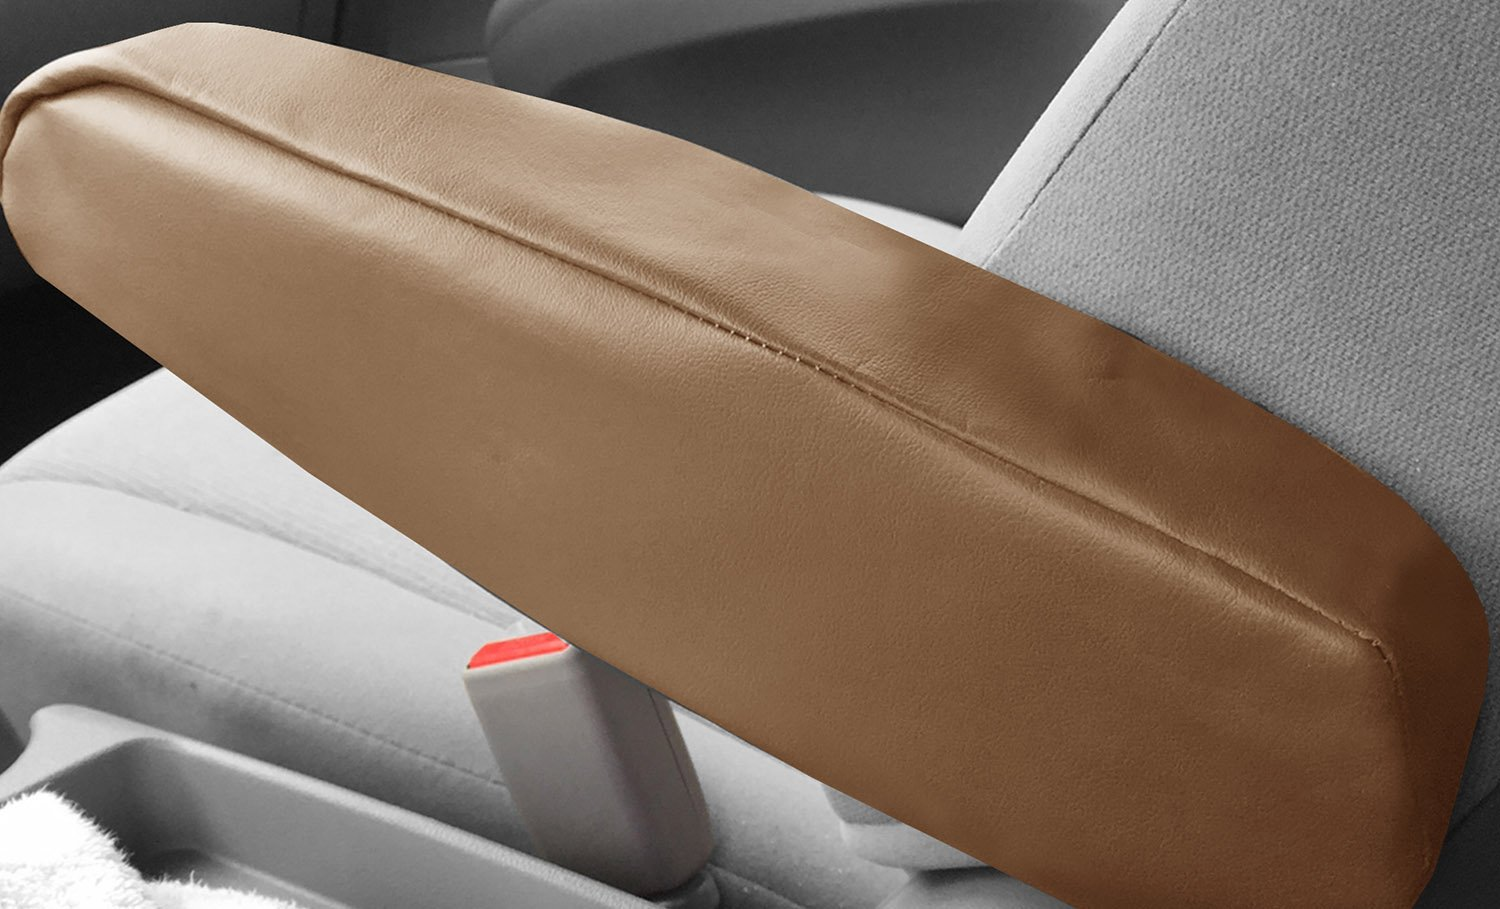 FH Group FH1051 Armrest Cover Semi-Universal Flat Cloth Fabric - One Pair